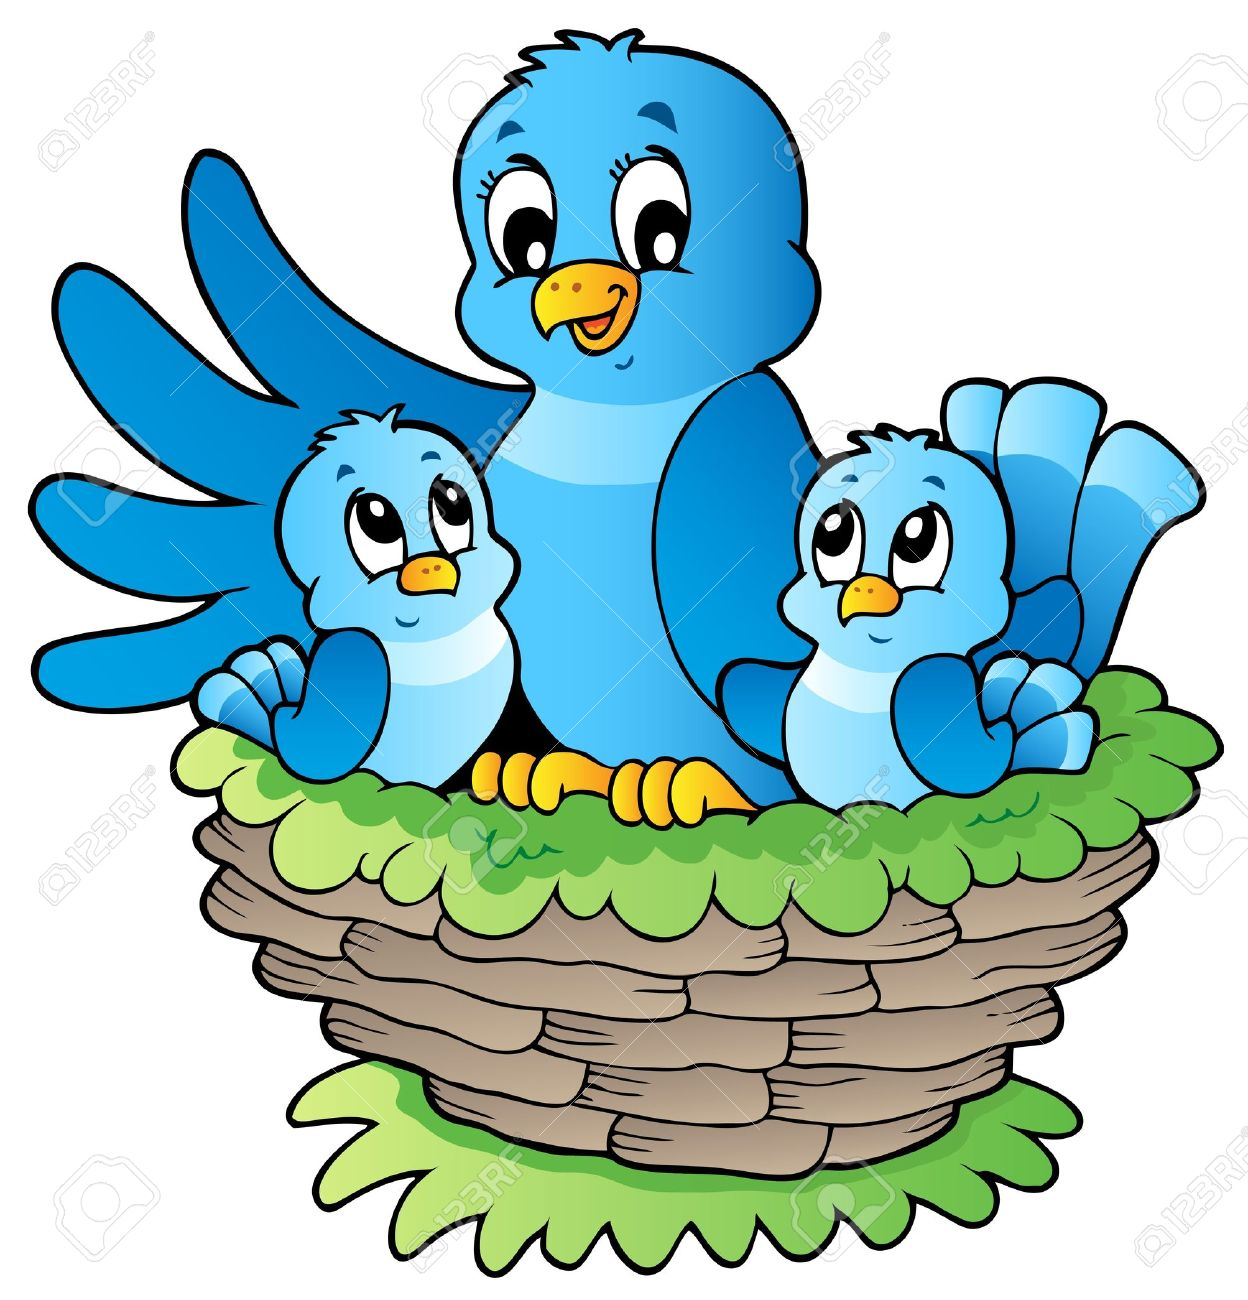 Clipart of a church with happy birds clip freeuse stock Nest Clipart Images | Free download best Nest Clipart Images on ... clip freeuse stock